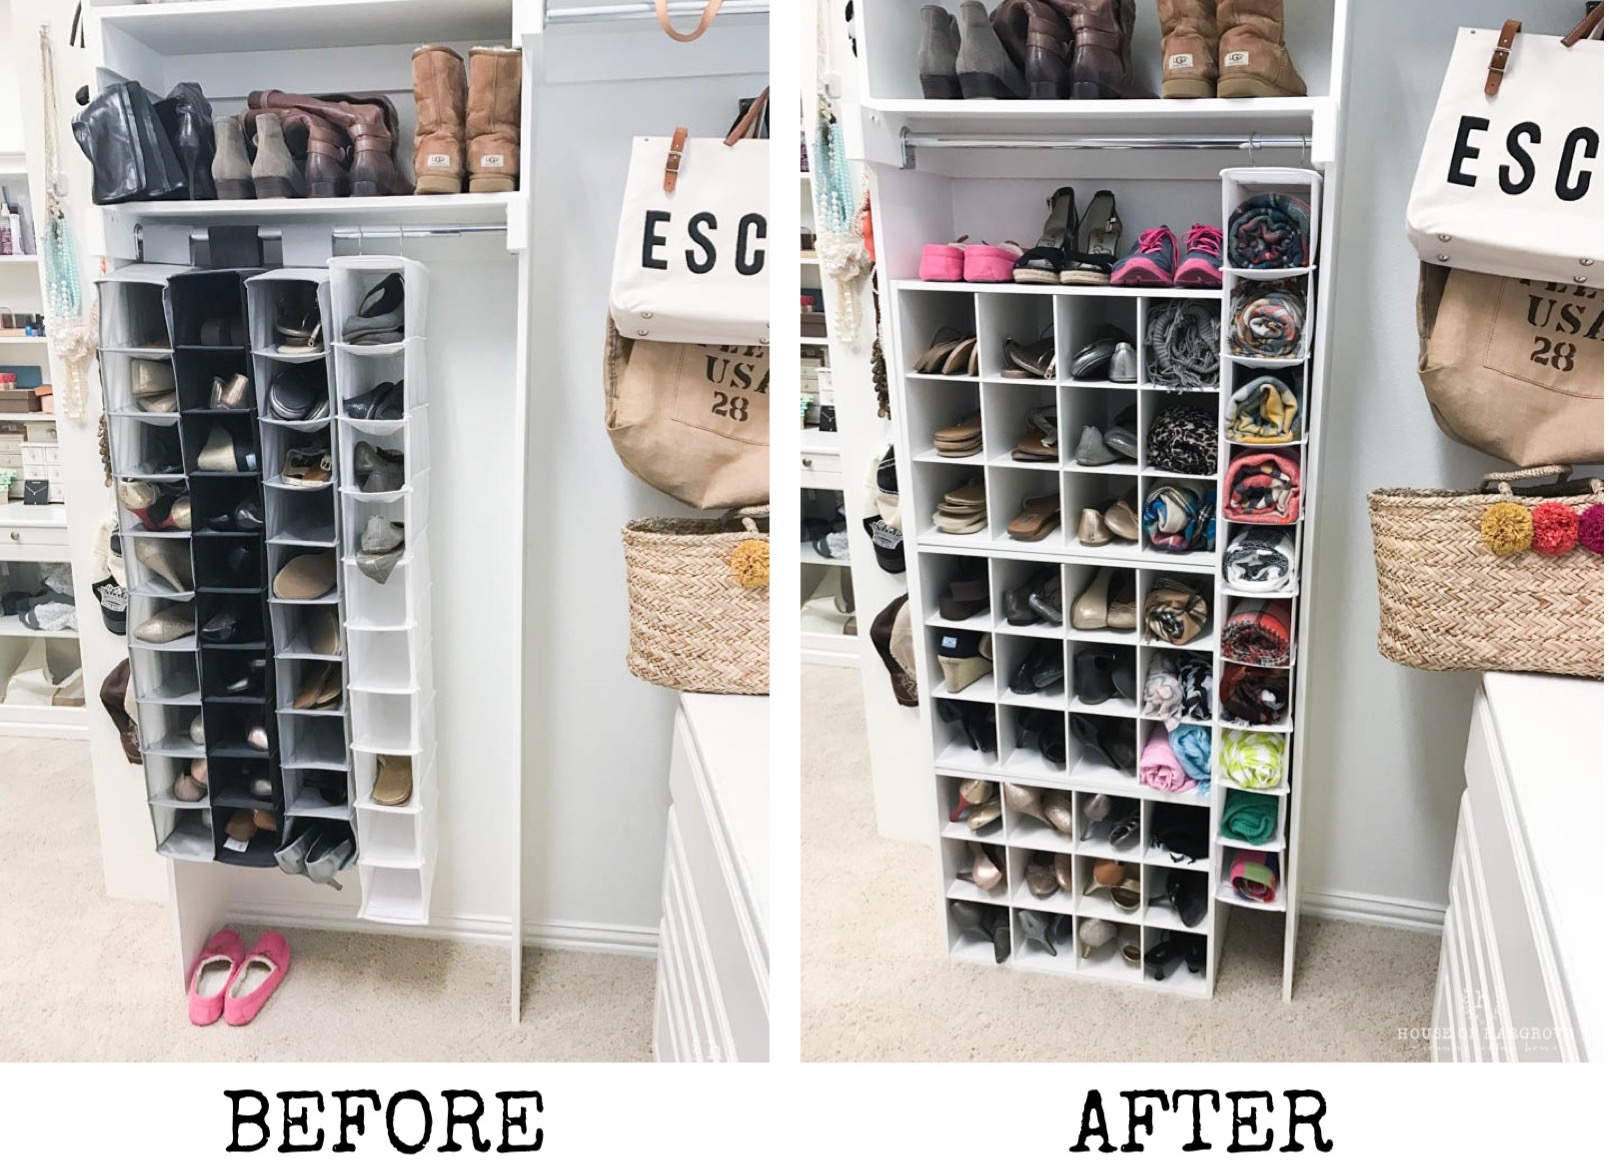 I Love My Closet Now Shoes All Have A E And This Winter Am Going To Being Able See Scarves They Used Be Shoved In Drawer